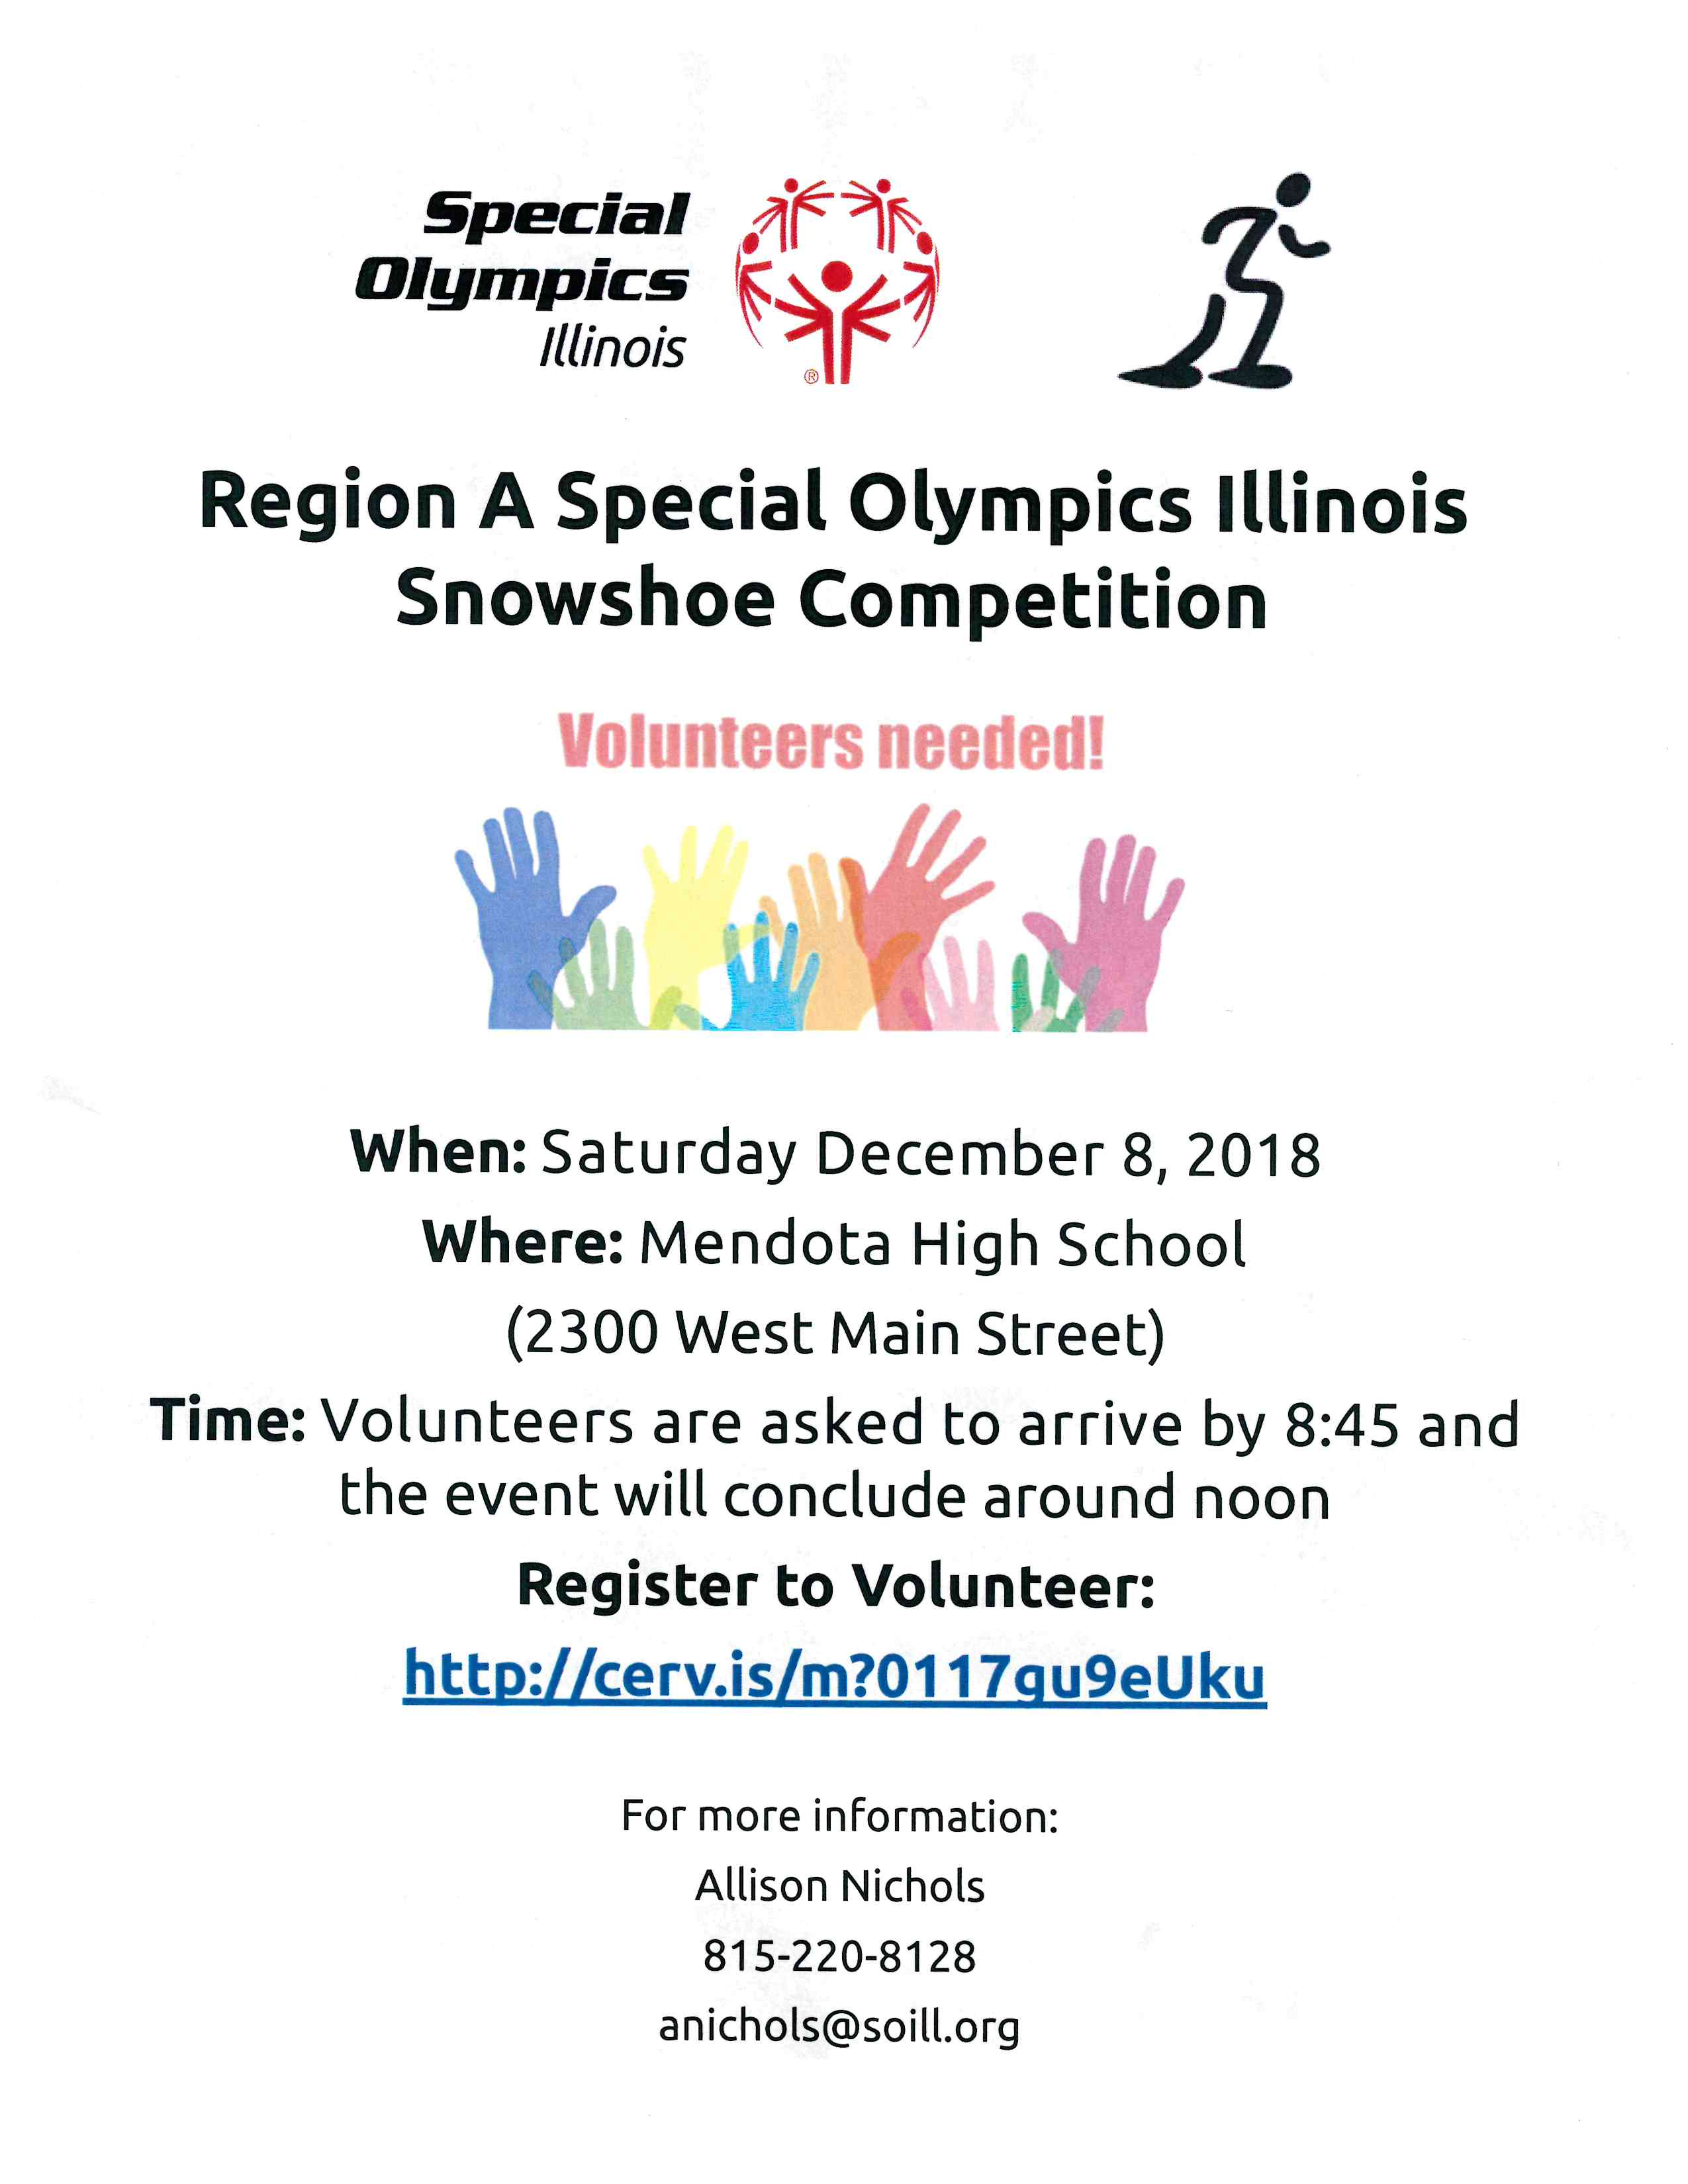 Special Olympics Snowshoe competion announcement